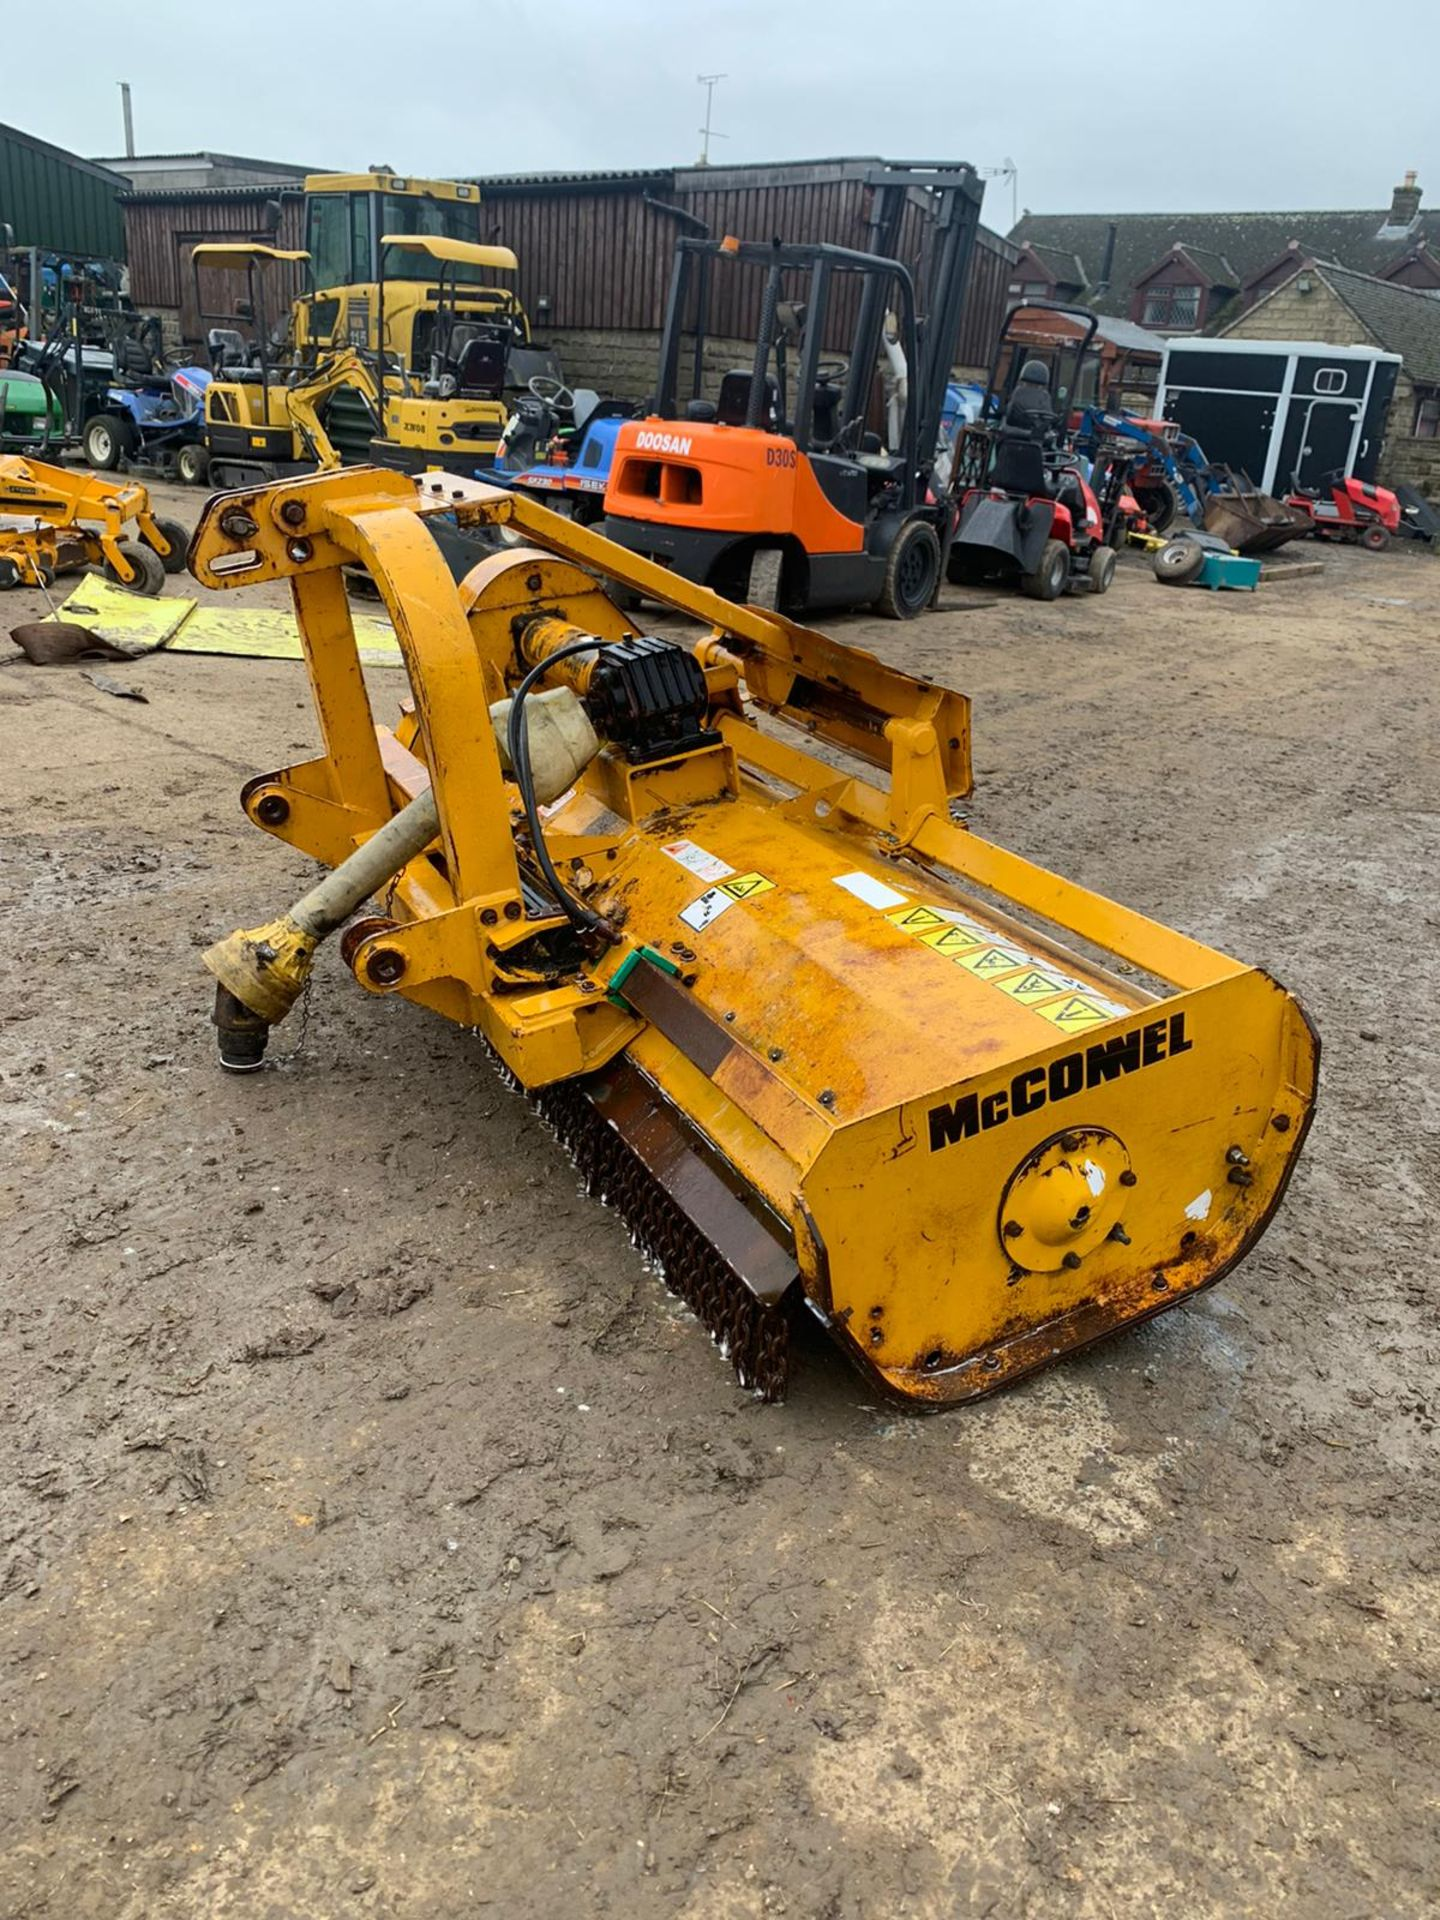 McCONNELL MDL180 FLAIL MOWER, SIDE SHIFT, C/W PTO *PLUS VAT* - Image 3 of 5